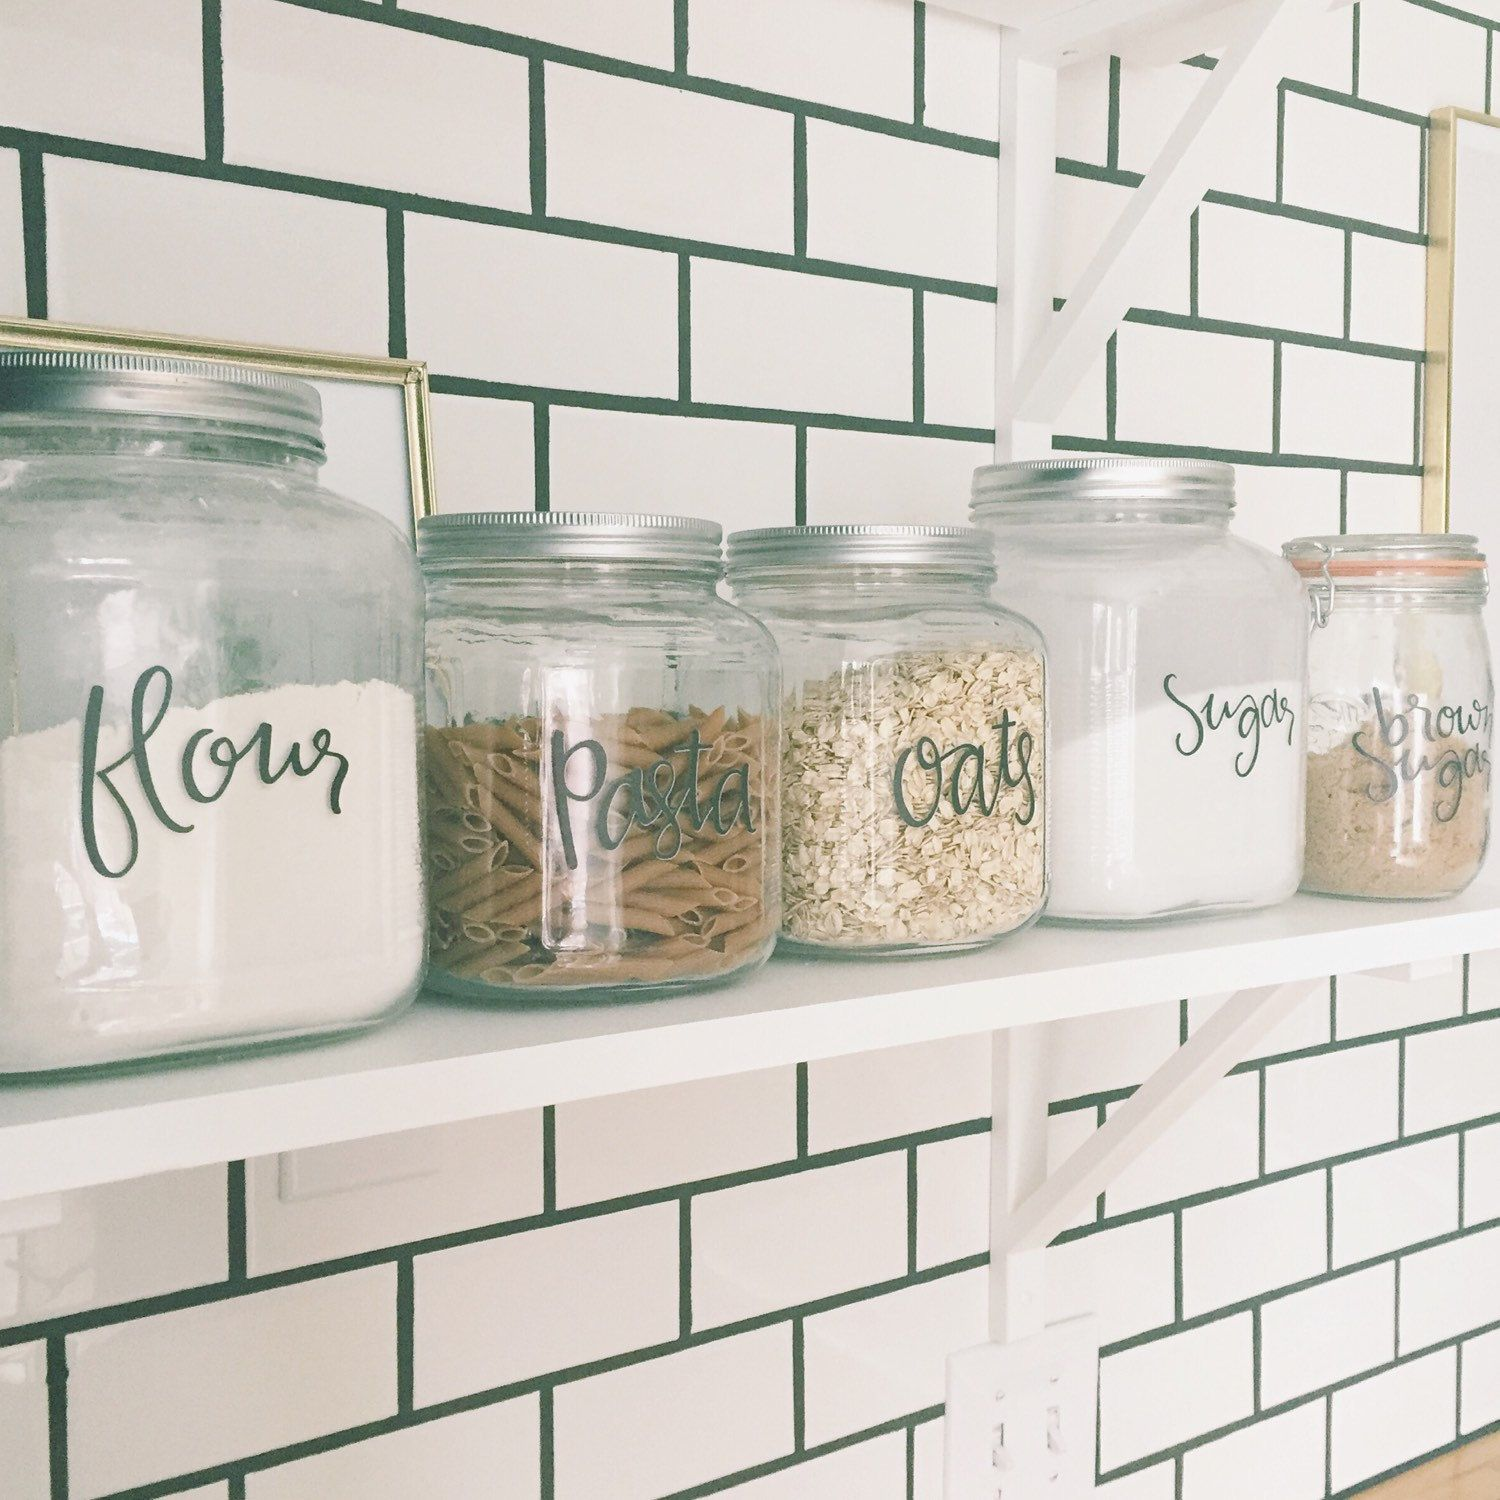 Kitchen Shelf Labels: Kitchen Canisters Labels In My Kitchen On My Open Shelving In Front Of White Subway Tile With